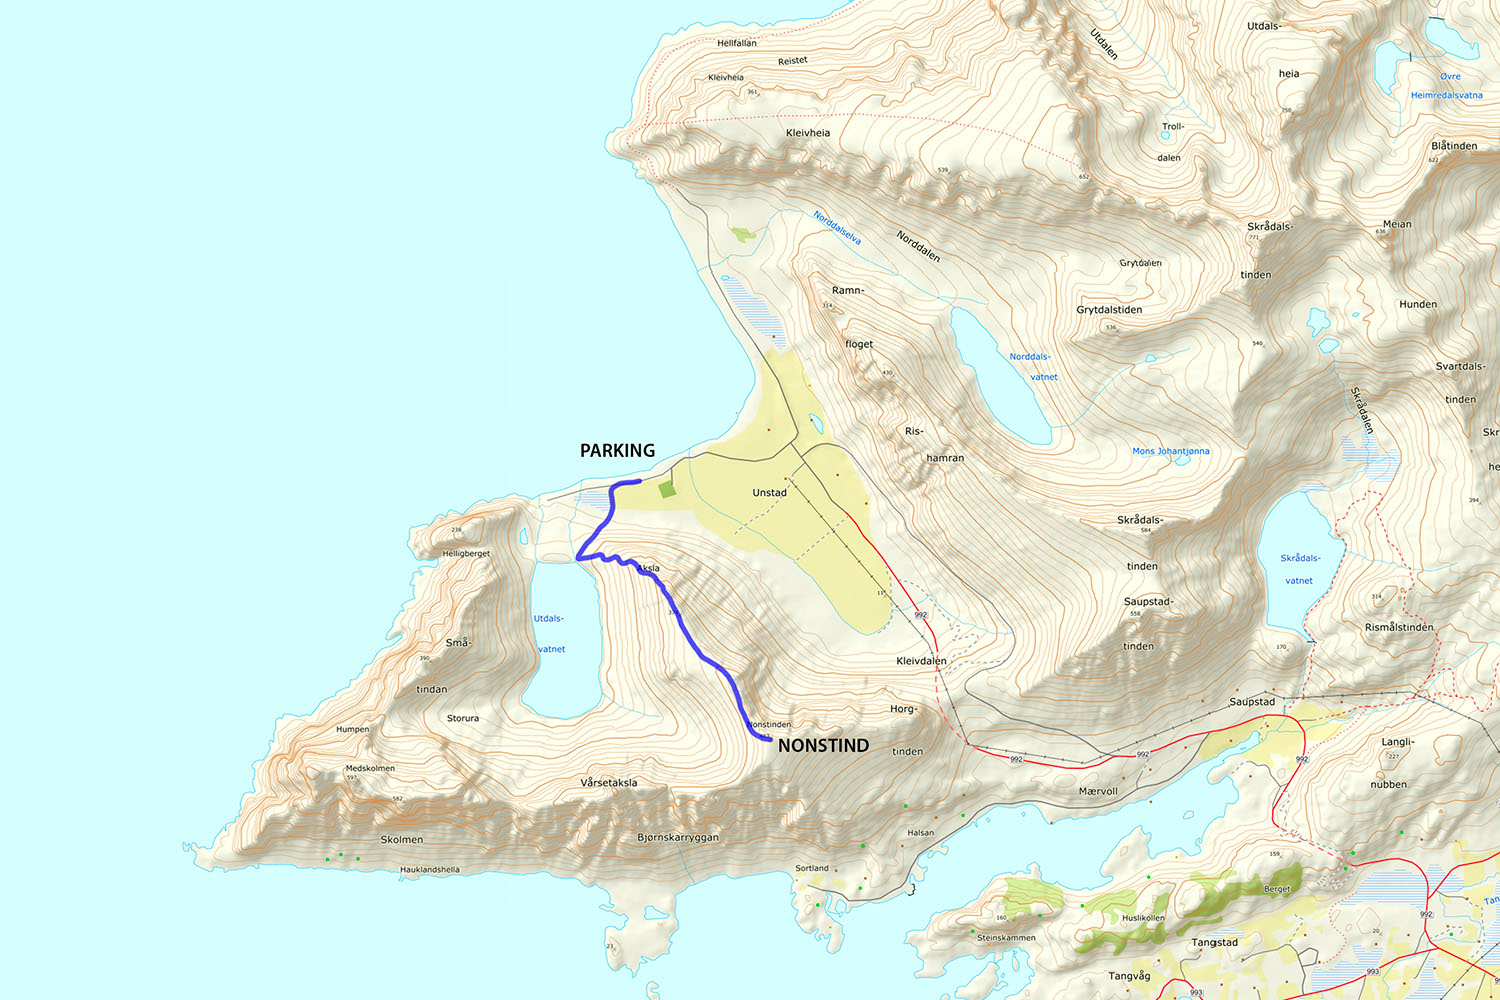 Nonstind Hiking Map